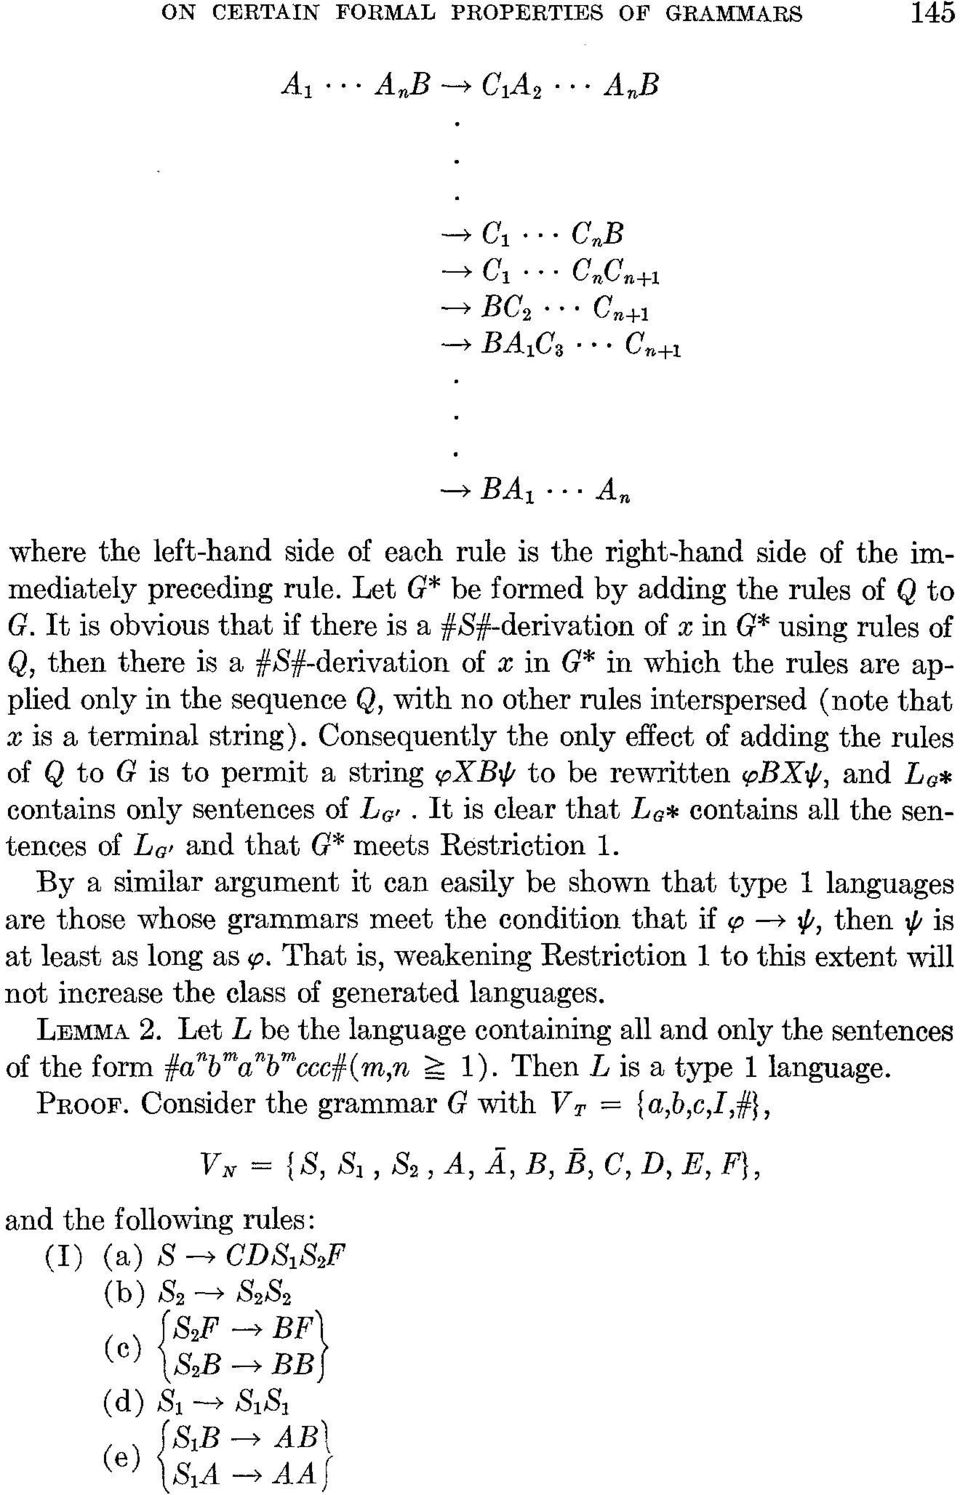 It is obvious that if there is a #S#-derivation of x in G* using rules of Q, then there is a #S#-derivation of x in G* in which the rules are applied only in the sequence Q, with no other rules